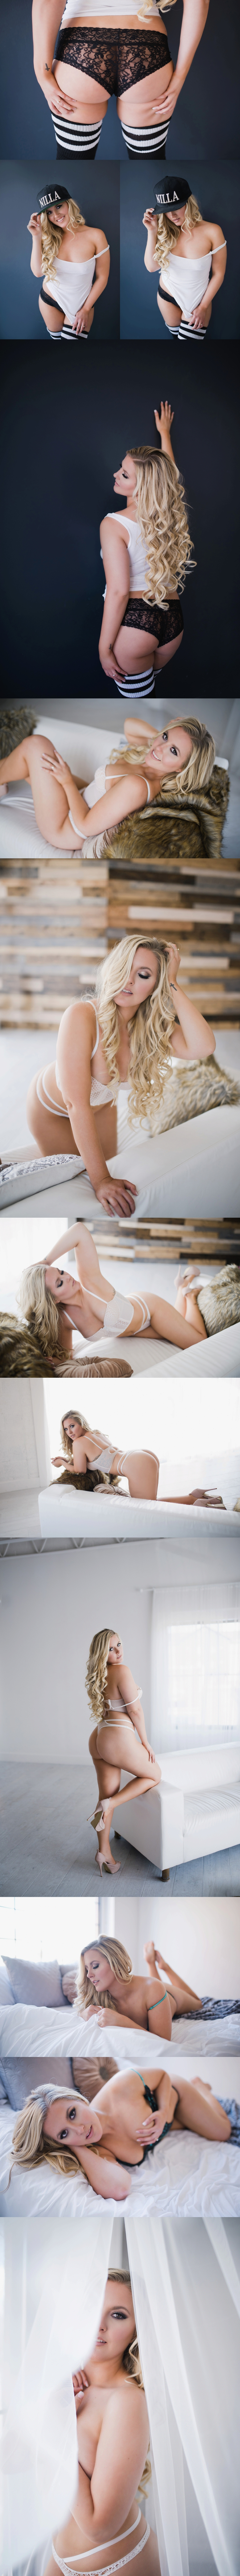 001amy-cloud-boudoir-sioux-city-boudoir-photographer